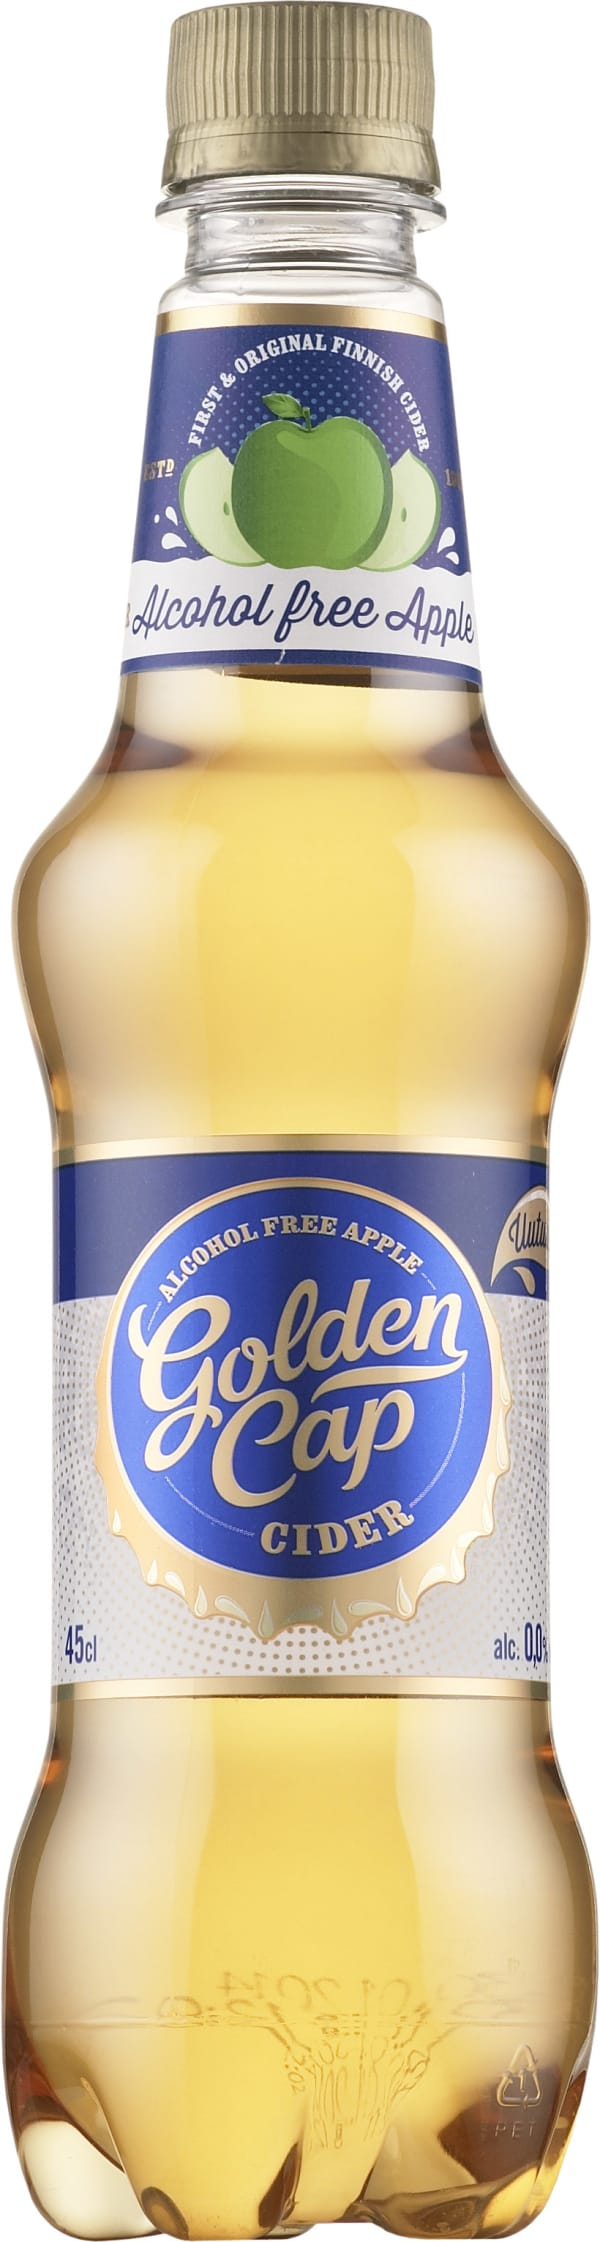 Golden Cap Alcohol Free Apple Cider  muovipullo